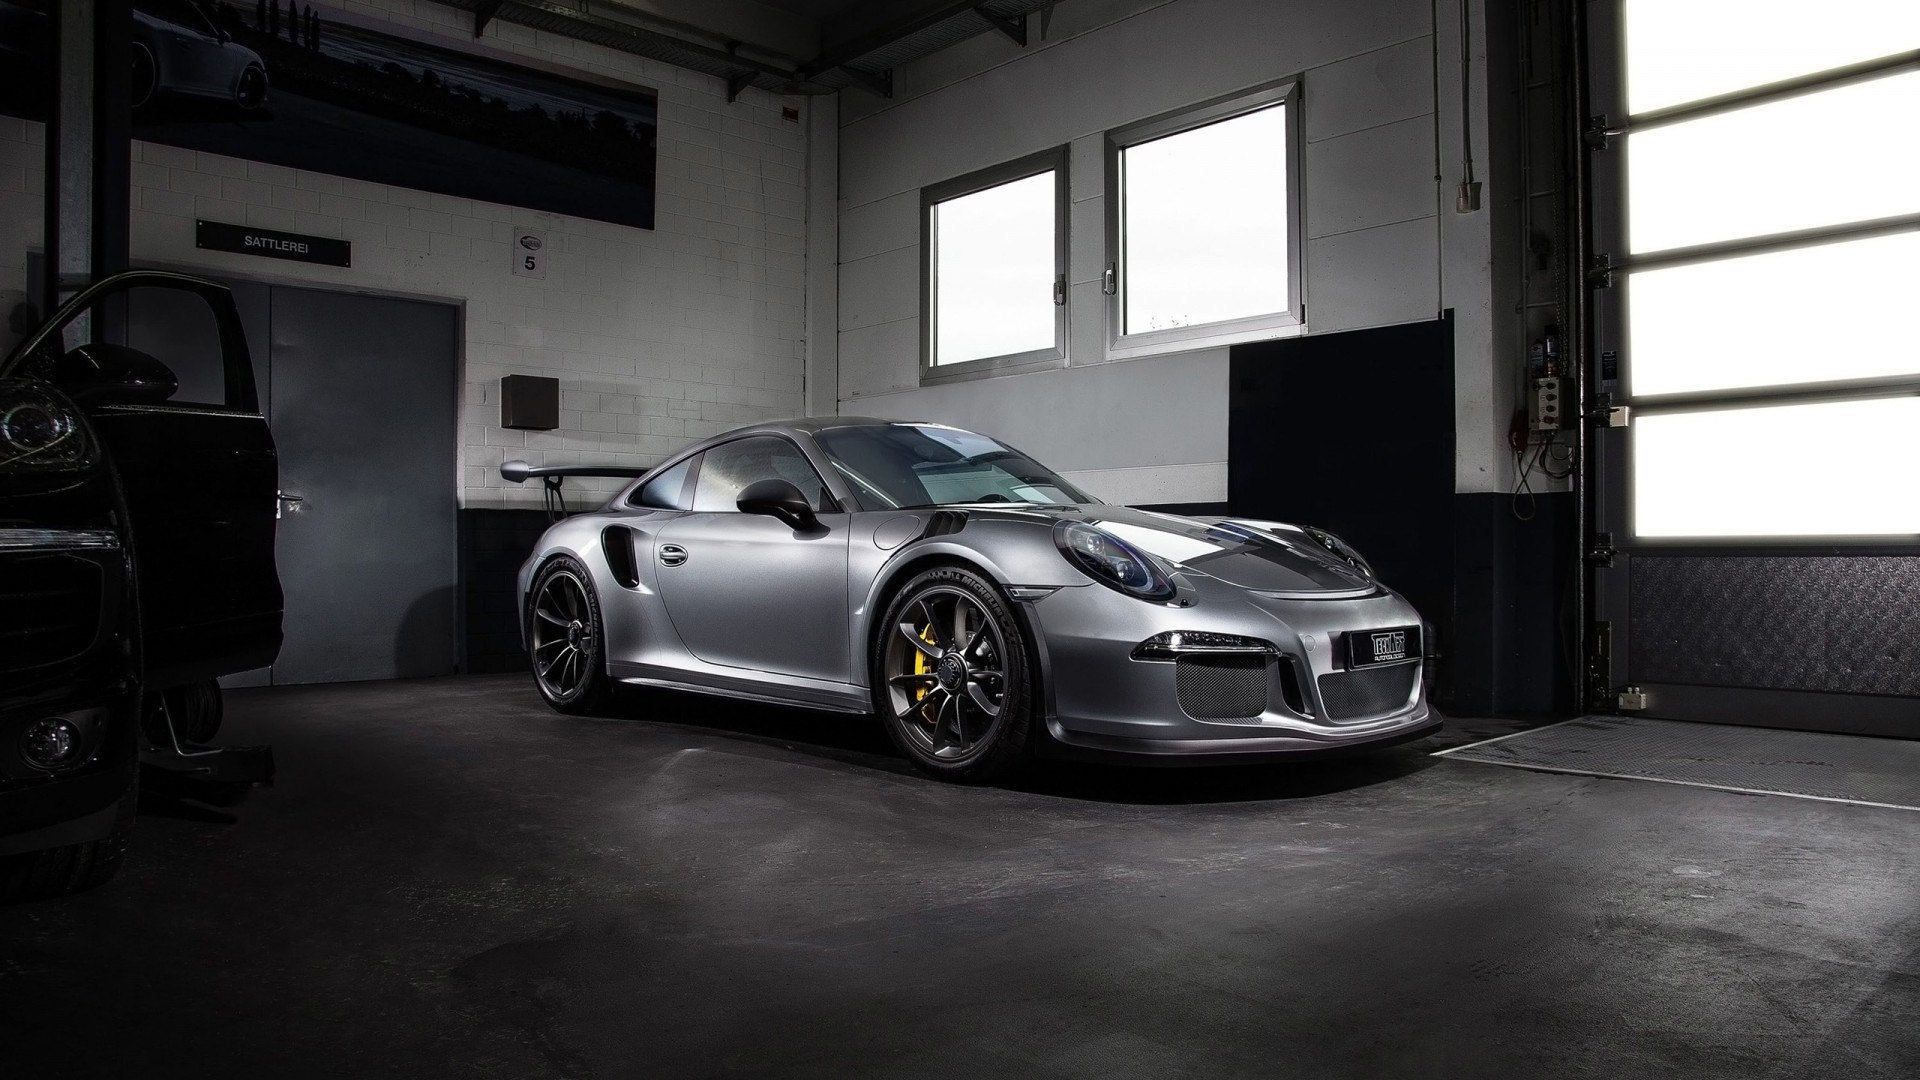 2016 TechArt Porsche 911 GT3 RS Carbon Sport 2 Wallpaper